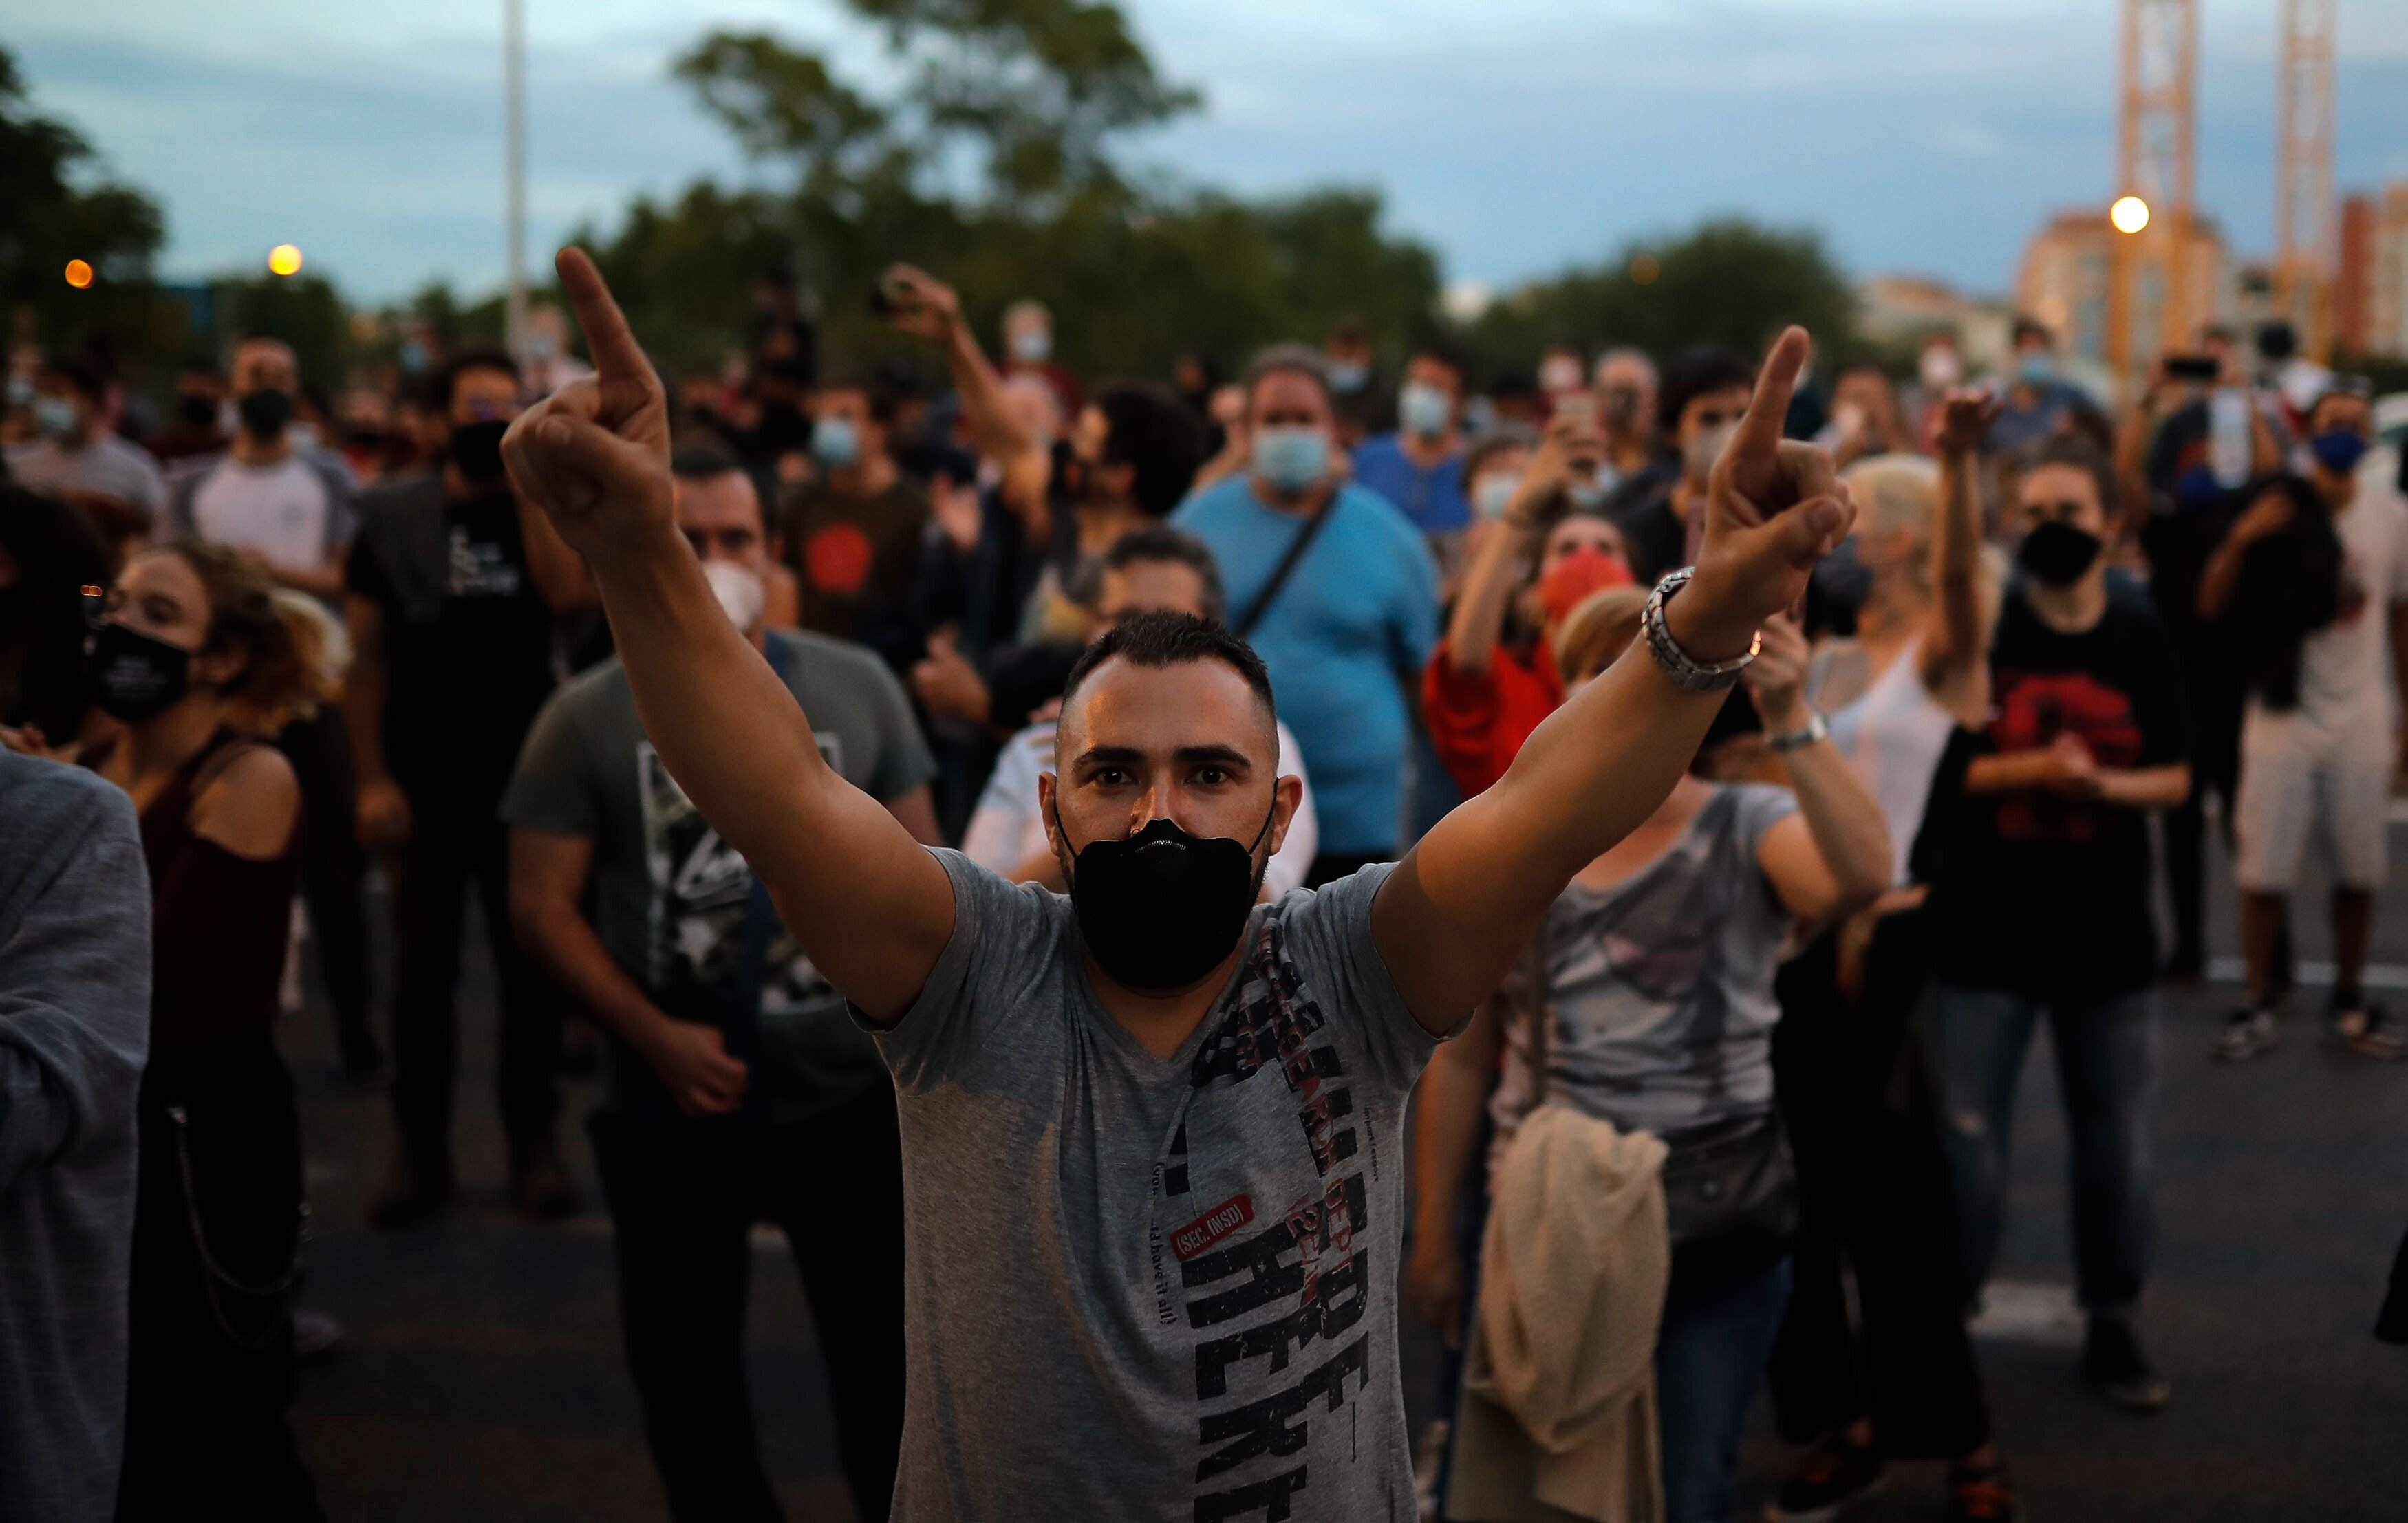 Protesters take part in a demonstration in the Vallecas neighborhood of Madrid against measures imposed by the Madrid regiona